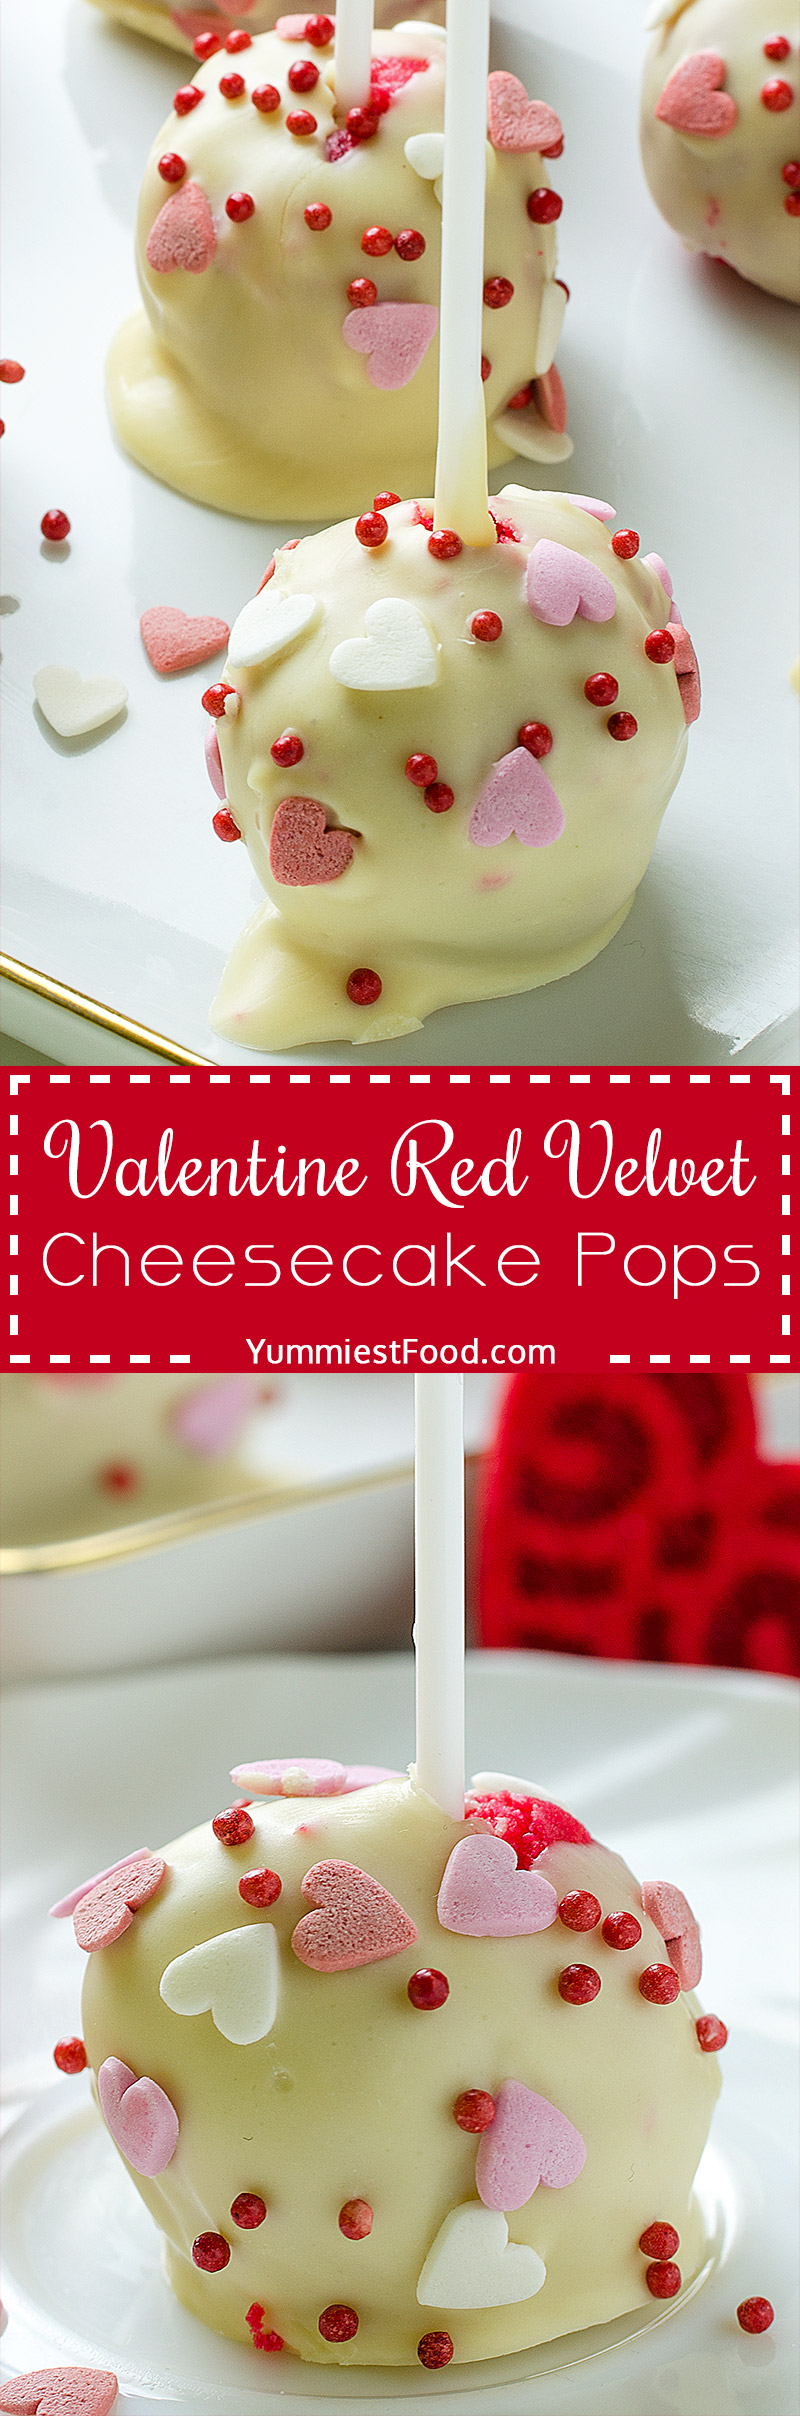 The most delicious Red Velvet Cheesecake Pops recipe ever. Perfect dessert for Valentine's Day.